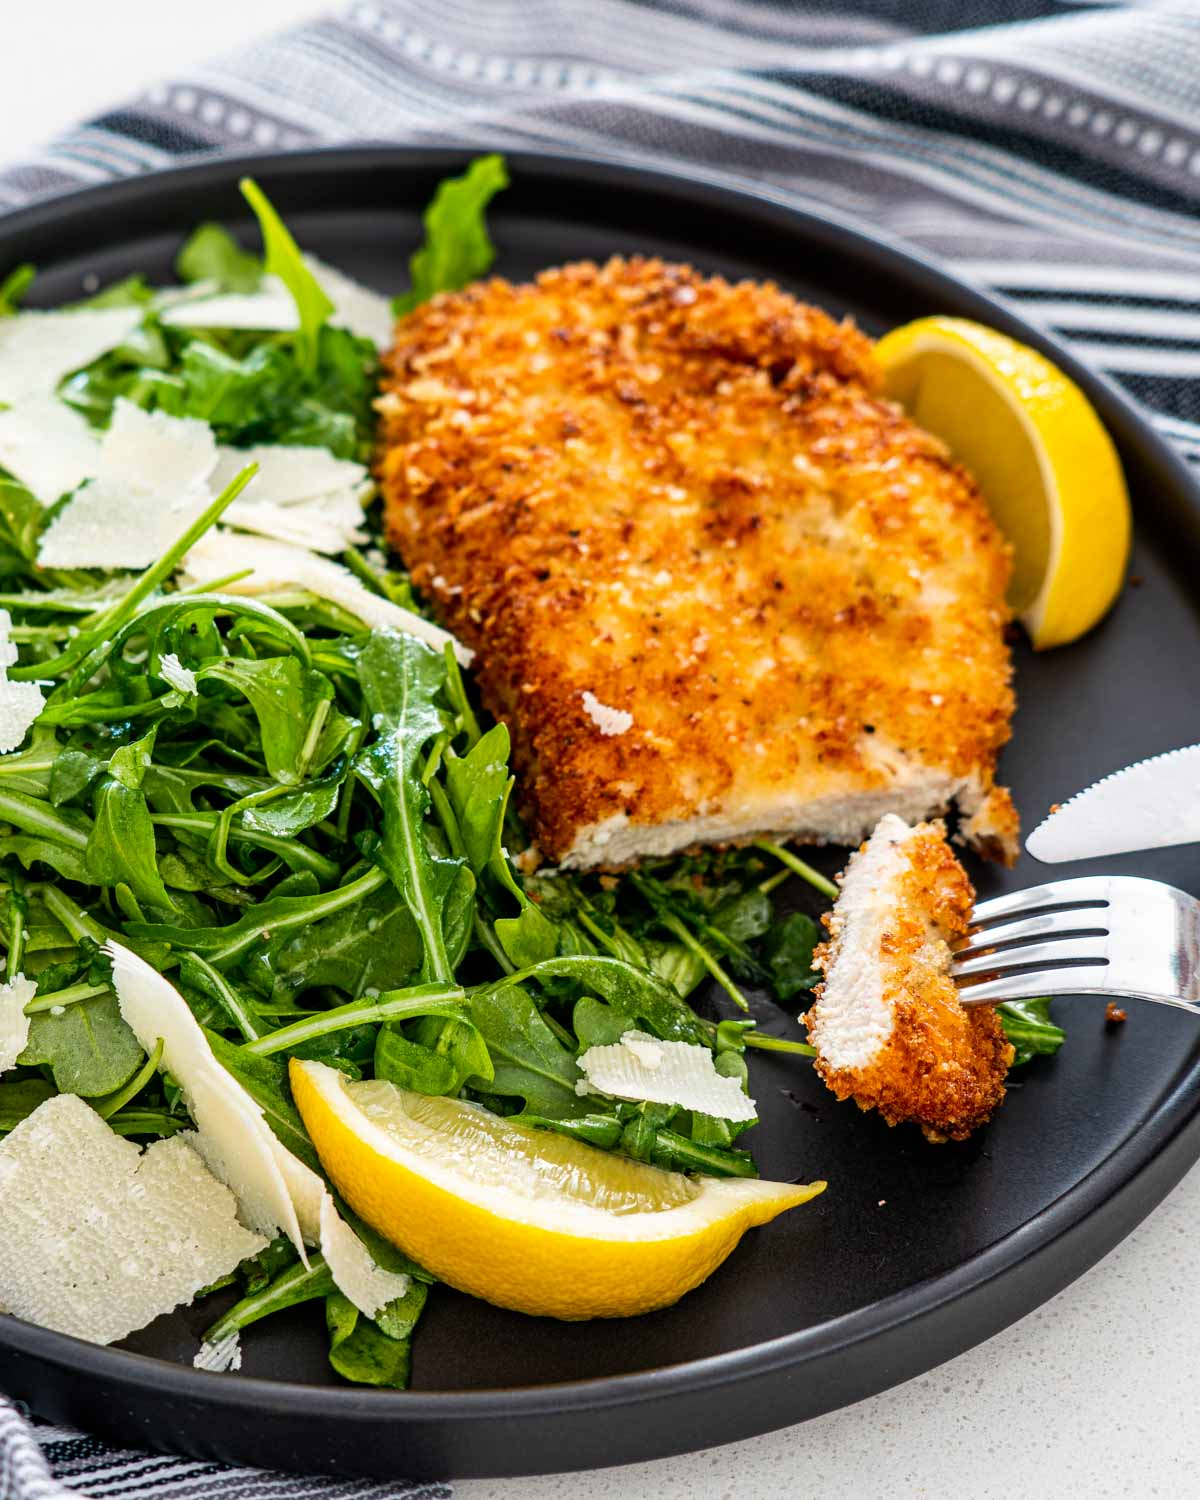 chicken milanese next to arugula salad garnished with shaved parmesan and lemon wedges.